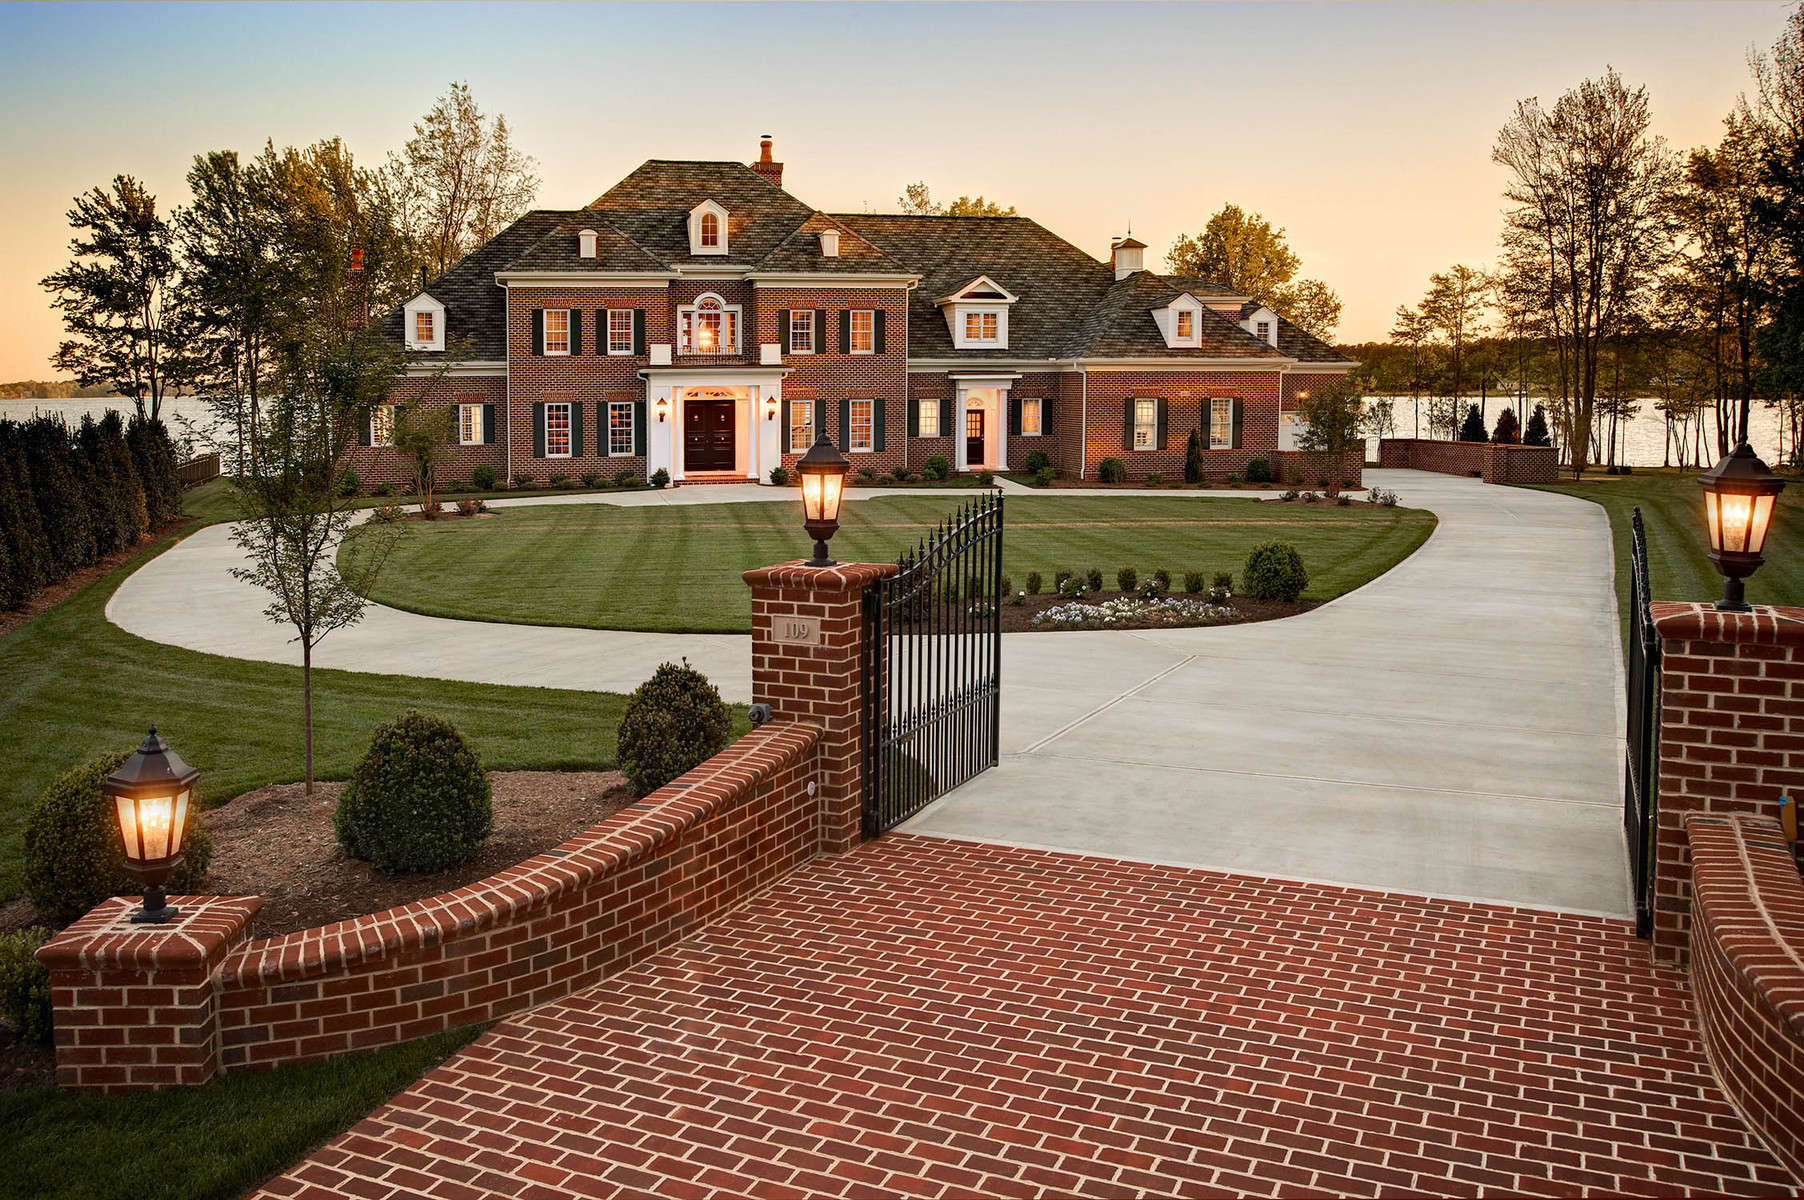 Architects builders interior architectural design photographers dustin peck Home driveway design ideas